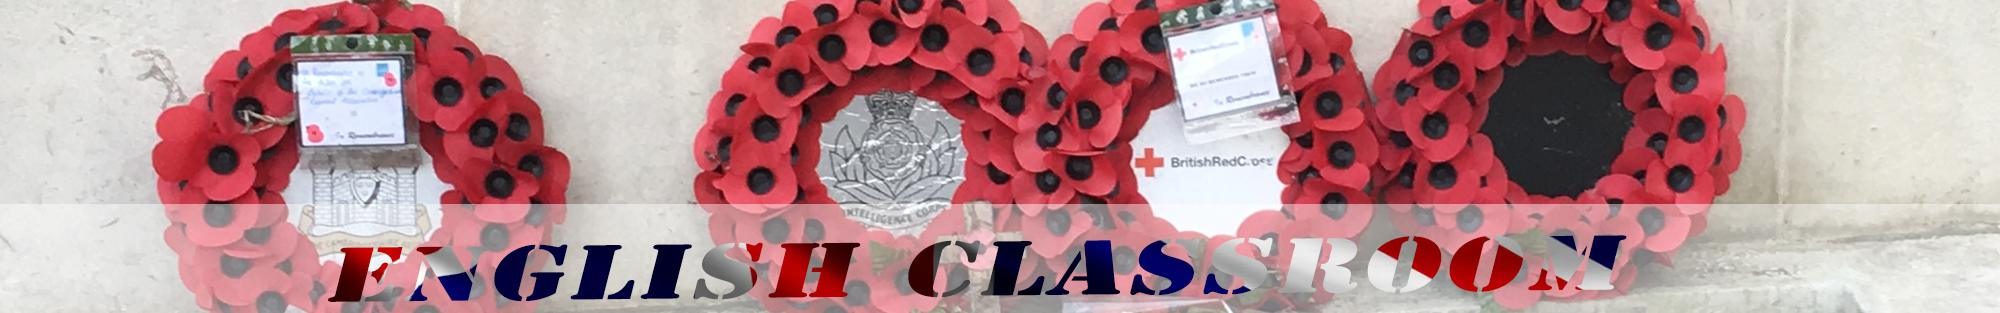 red poppies wreath header english classroom